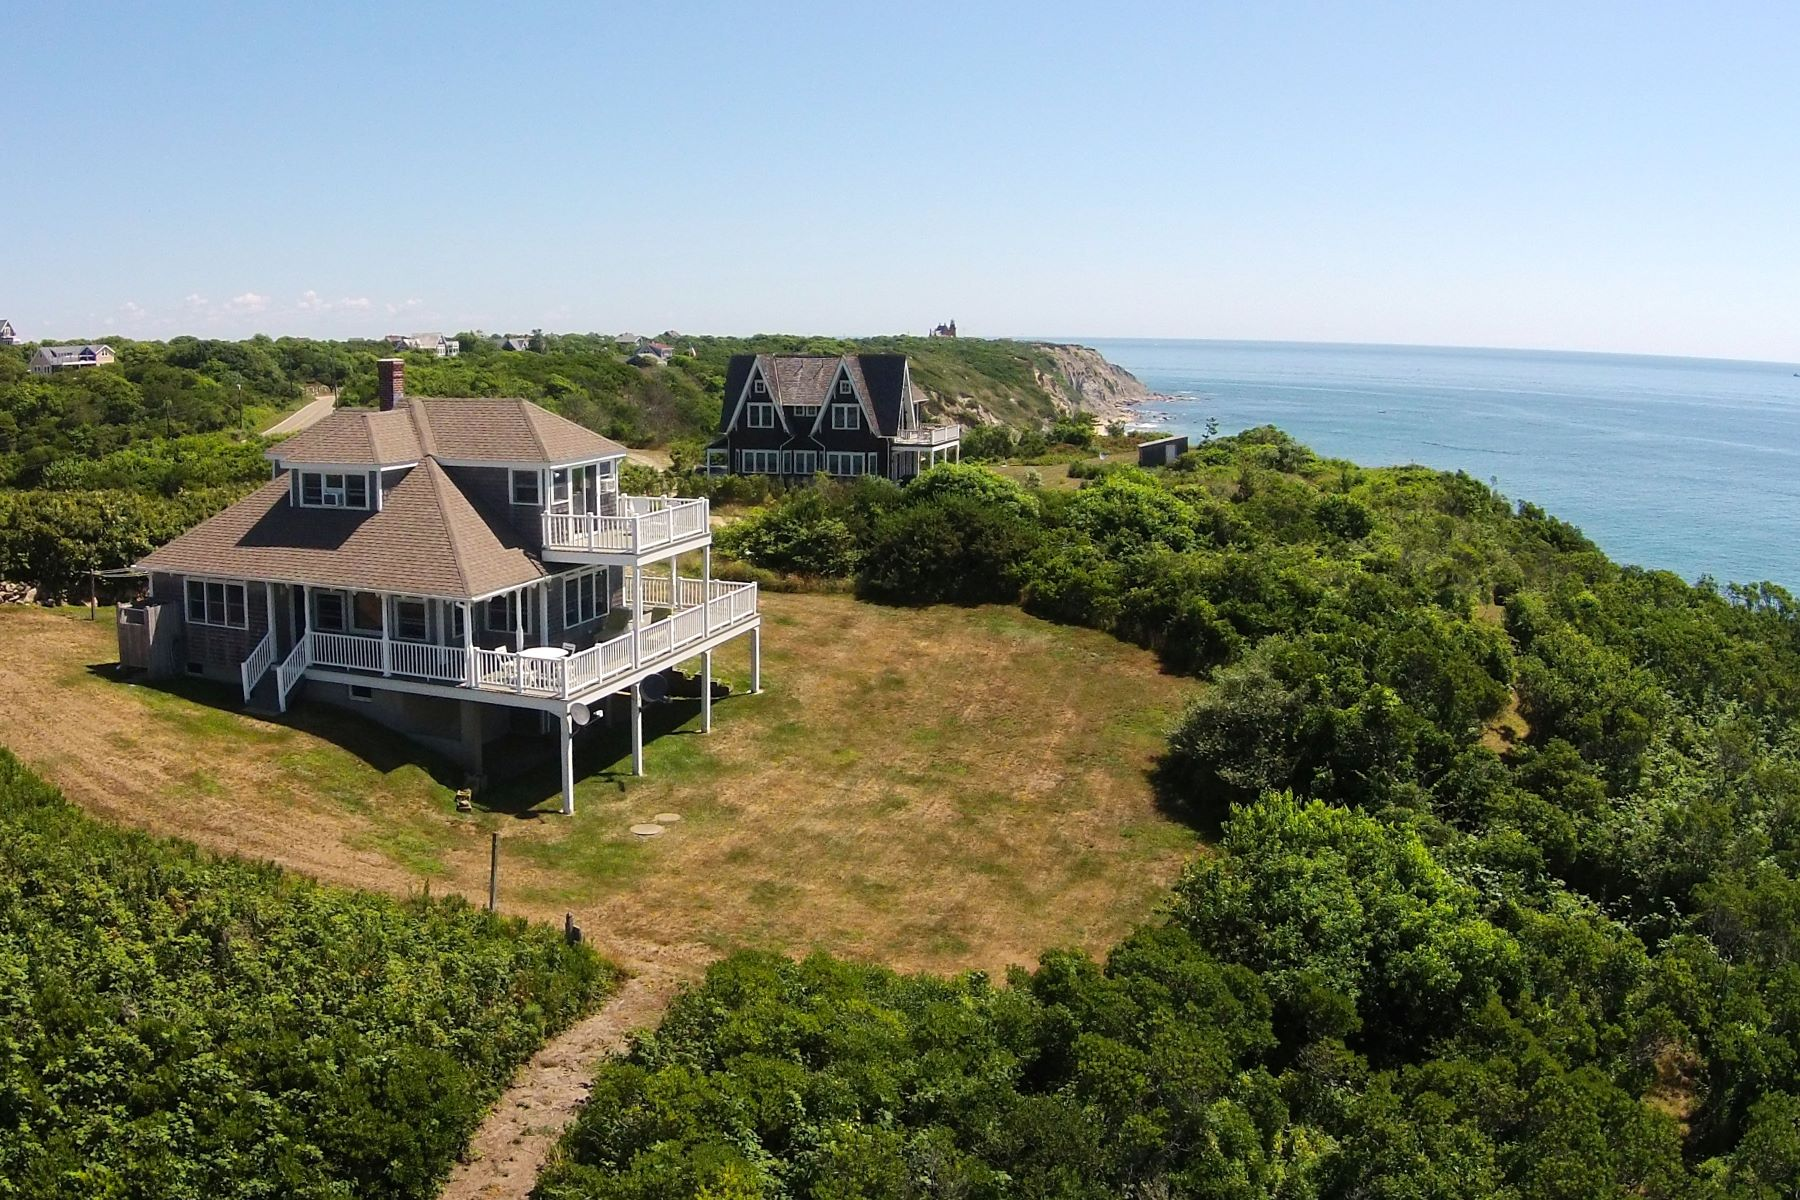 Single Family Home for Sale at Mohegan Bluff Drama 800 Mohegan Trail Block Island, Rhode Island 02807 United States